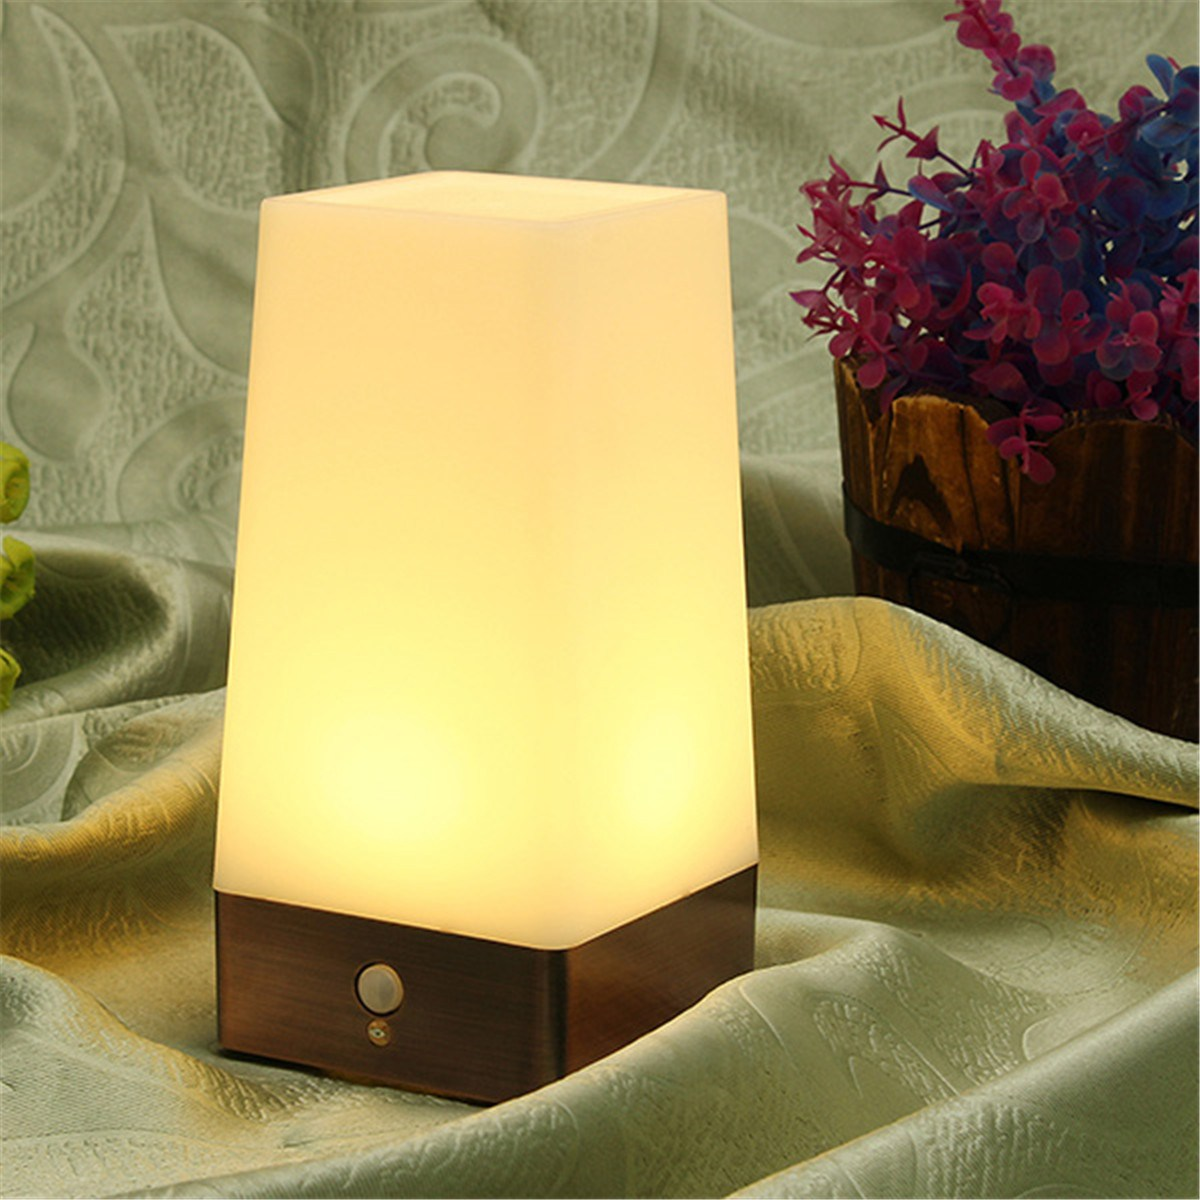 Square Warm White Lighting Dual Control LED Human Body Sensor Motion Night Light Battery Powered Table Bedside Lamp Home Decor keyshare dual bulb night vision led light kit for remote control drones